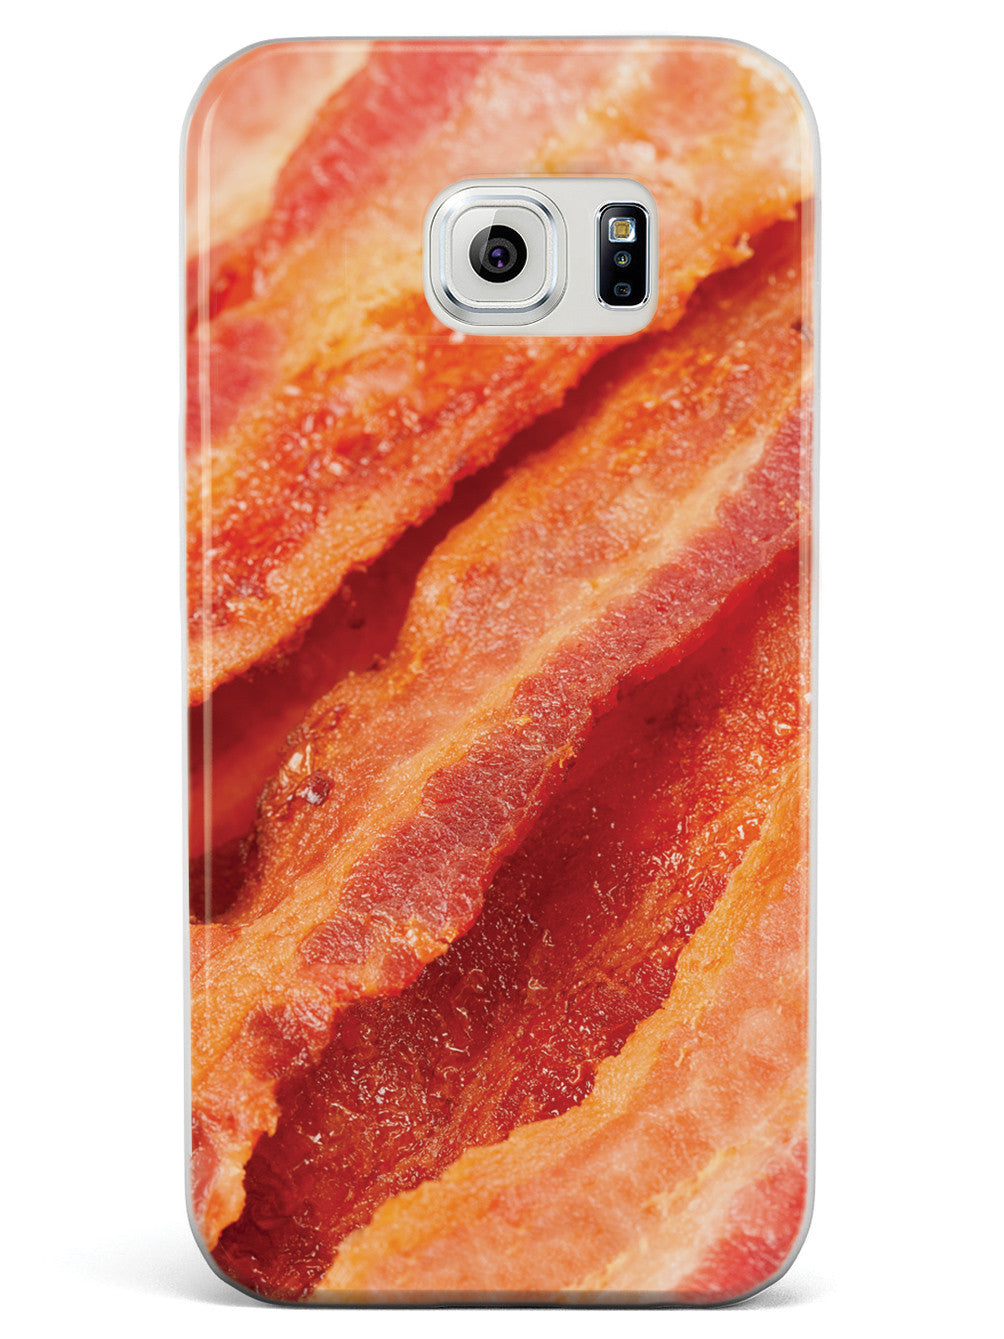 Cooked Bacon Meat Lover's Case